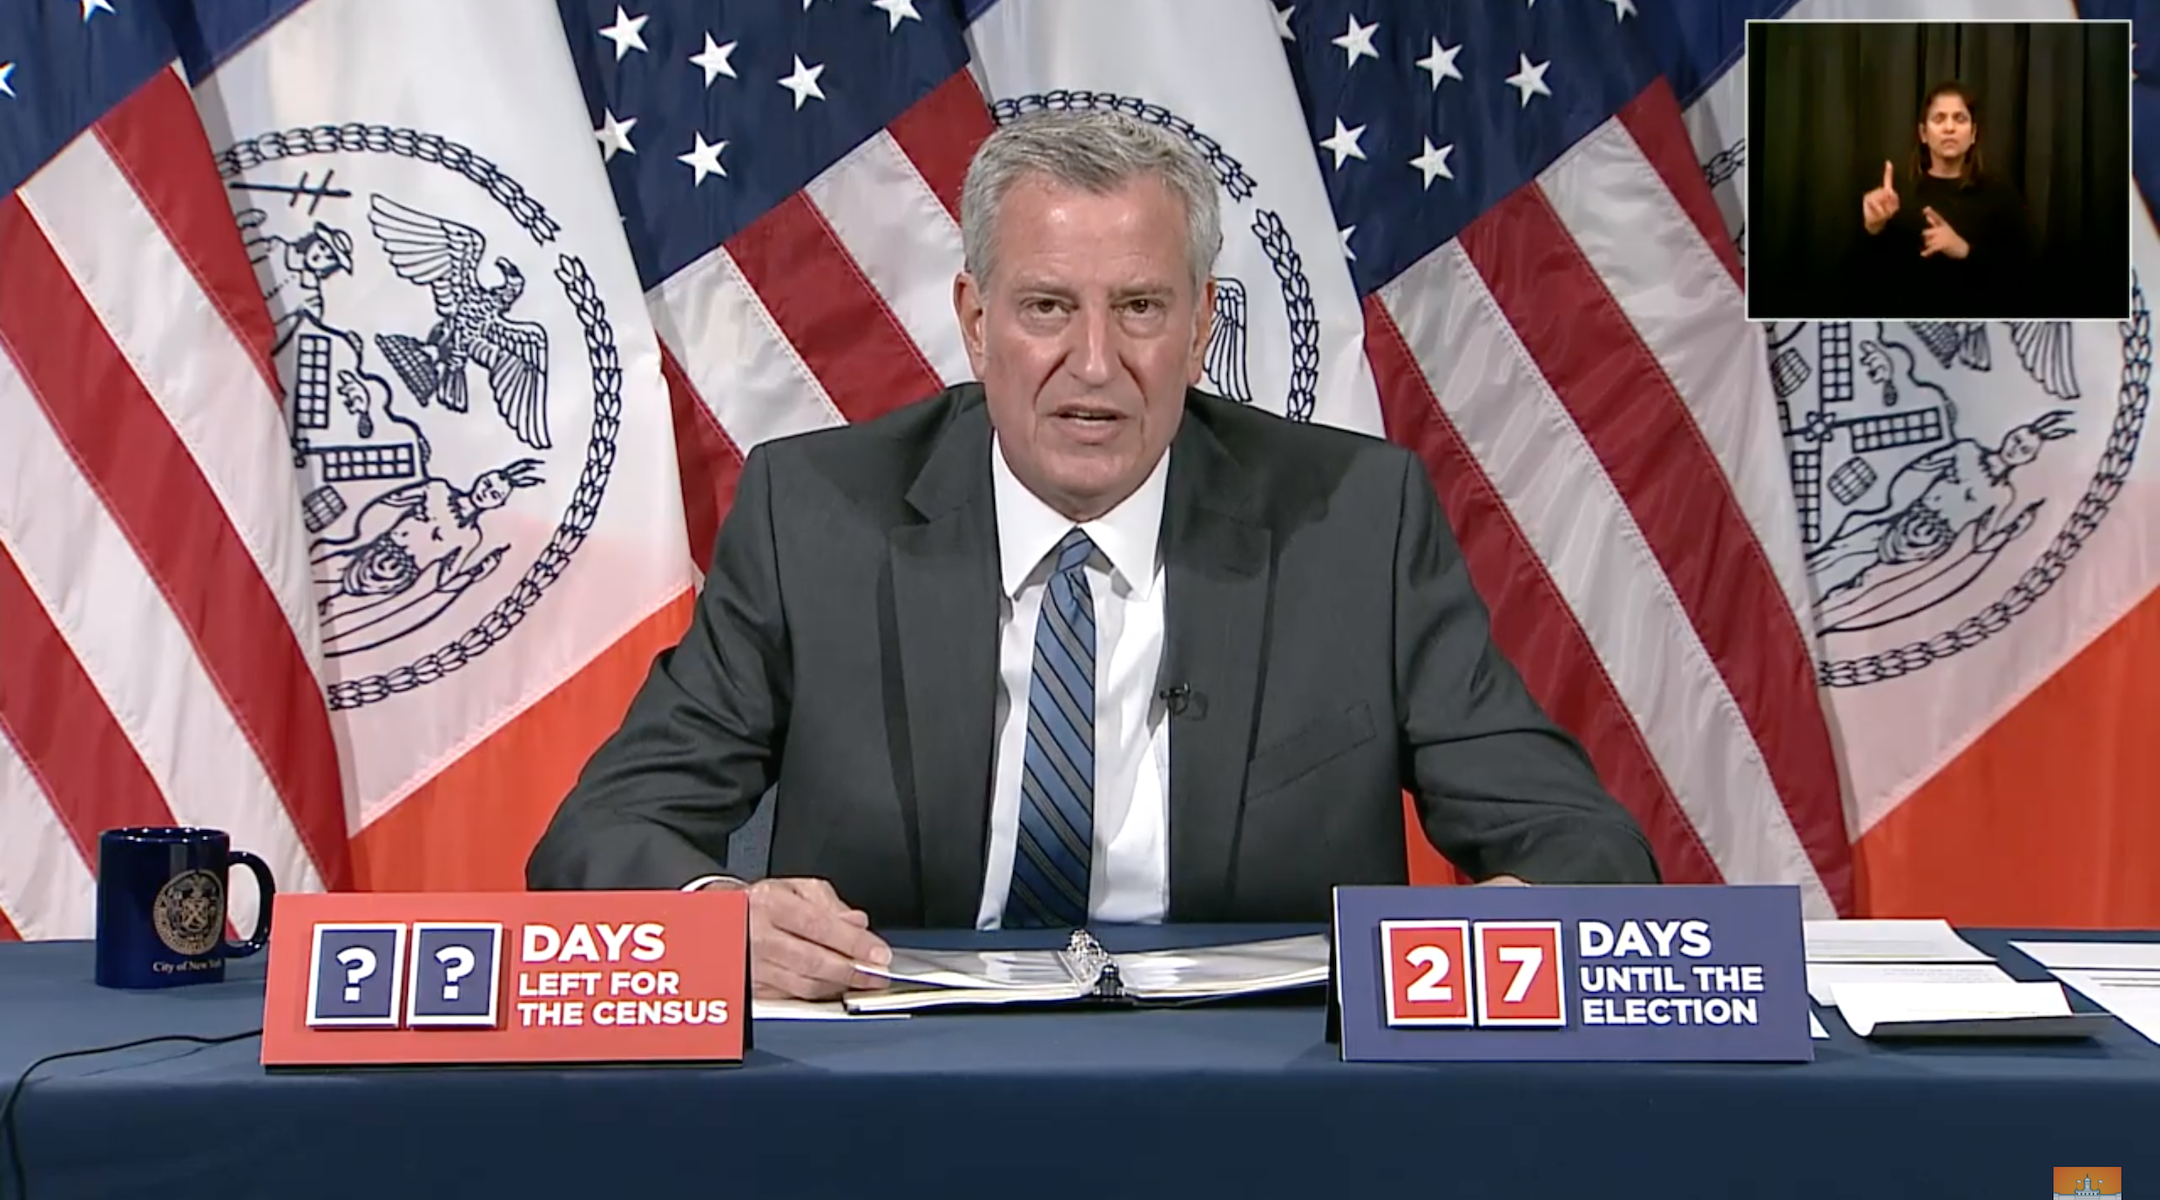 New York City Mayor Bill de Blasio speaks at a press conference about COVID-19 on Oct. 7, 2020. (Screenshot)